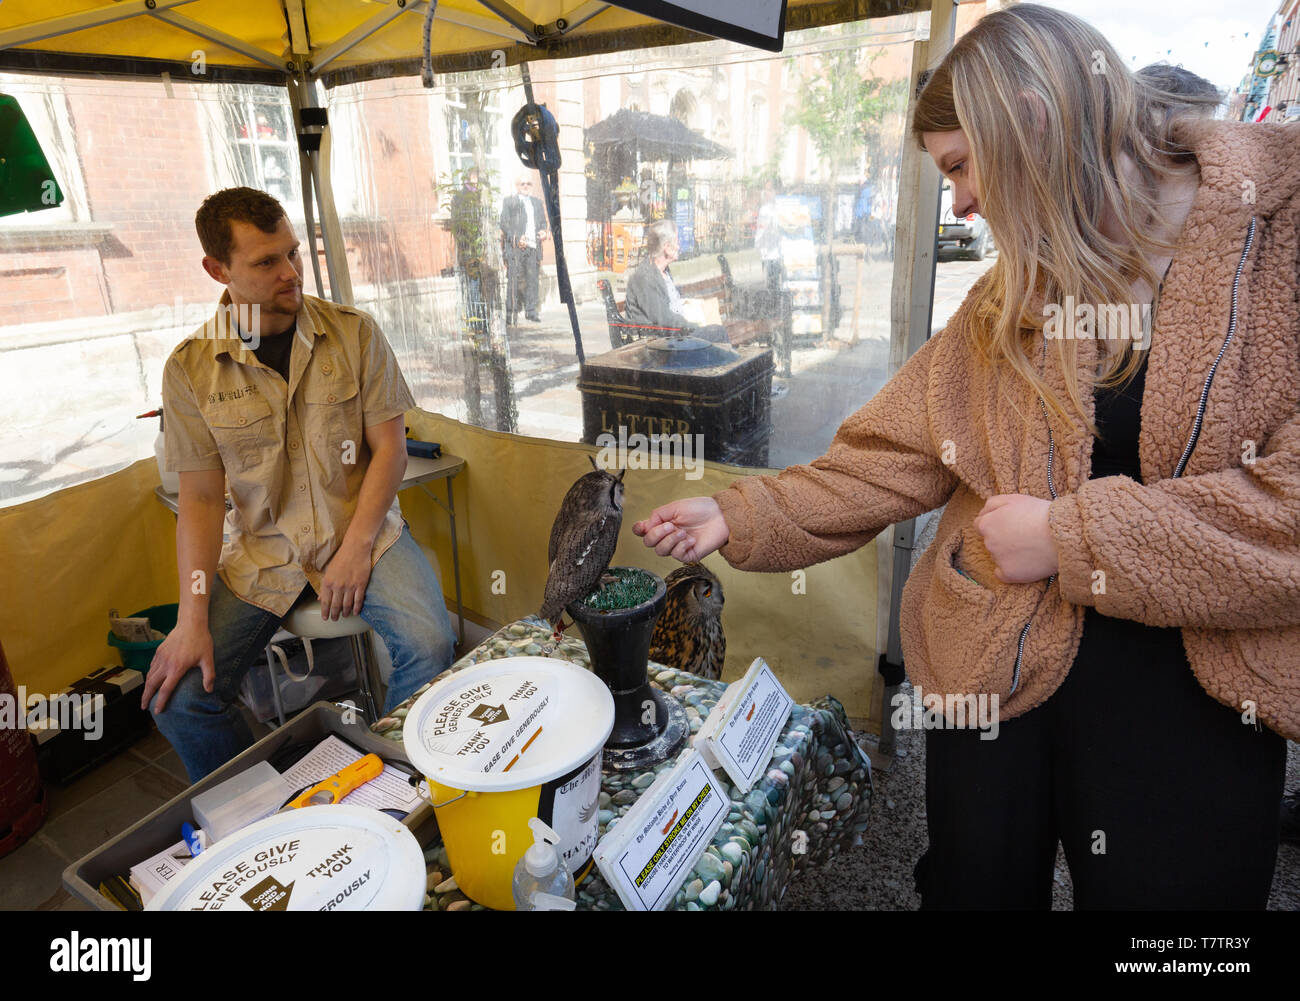 People looking at owls at a charity Birds of Prey Rescue stall, Worcester Worcestershire UK - Stock Image